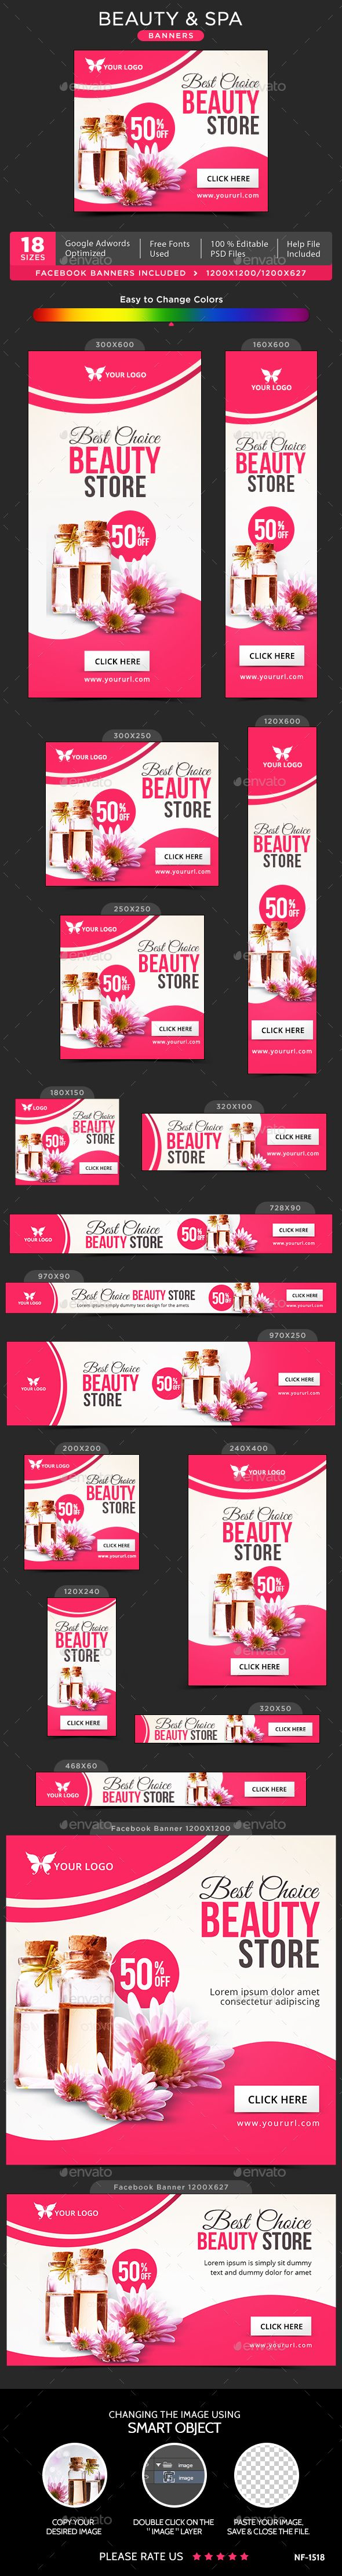 Beauty & Spa Banners Design Template  - Banners & Ads Web Element Template PSD. Download here: https://graphicriver.net/item/beauty-spa-banners/17710561?s_rank=37&ref=yinkira